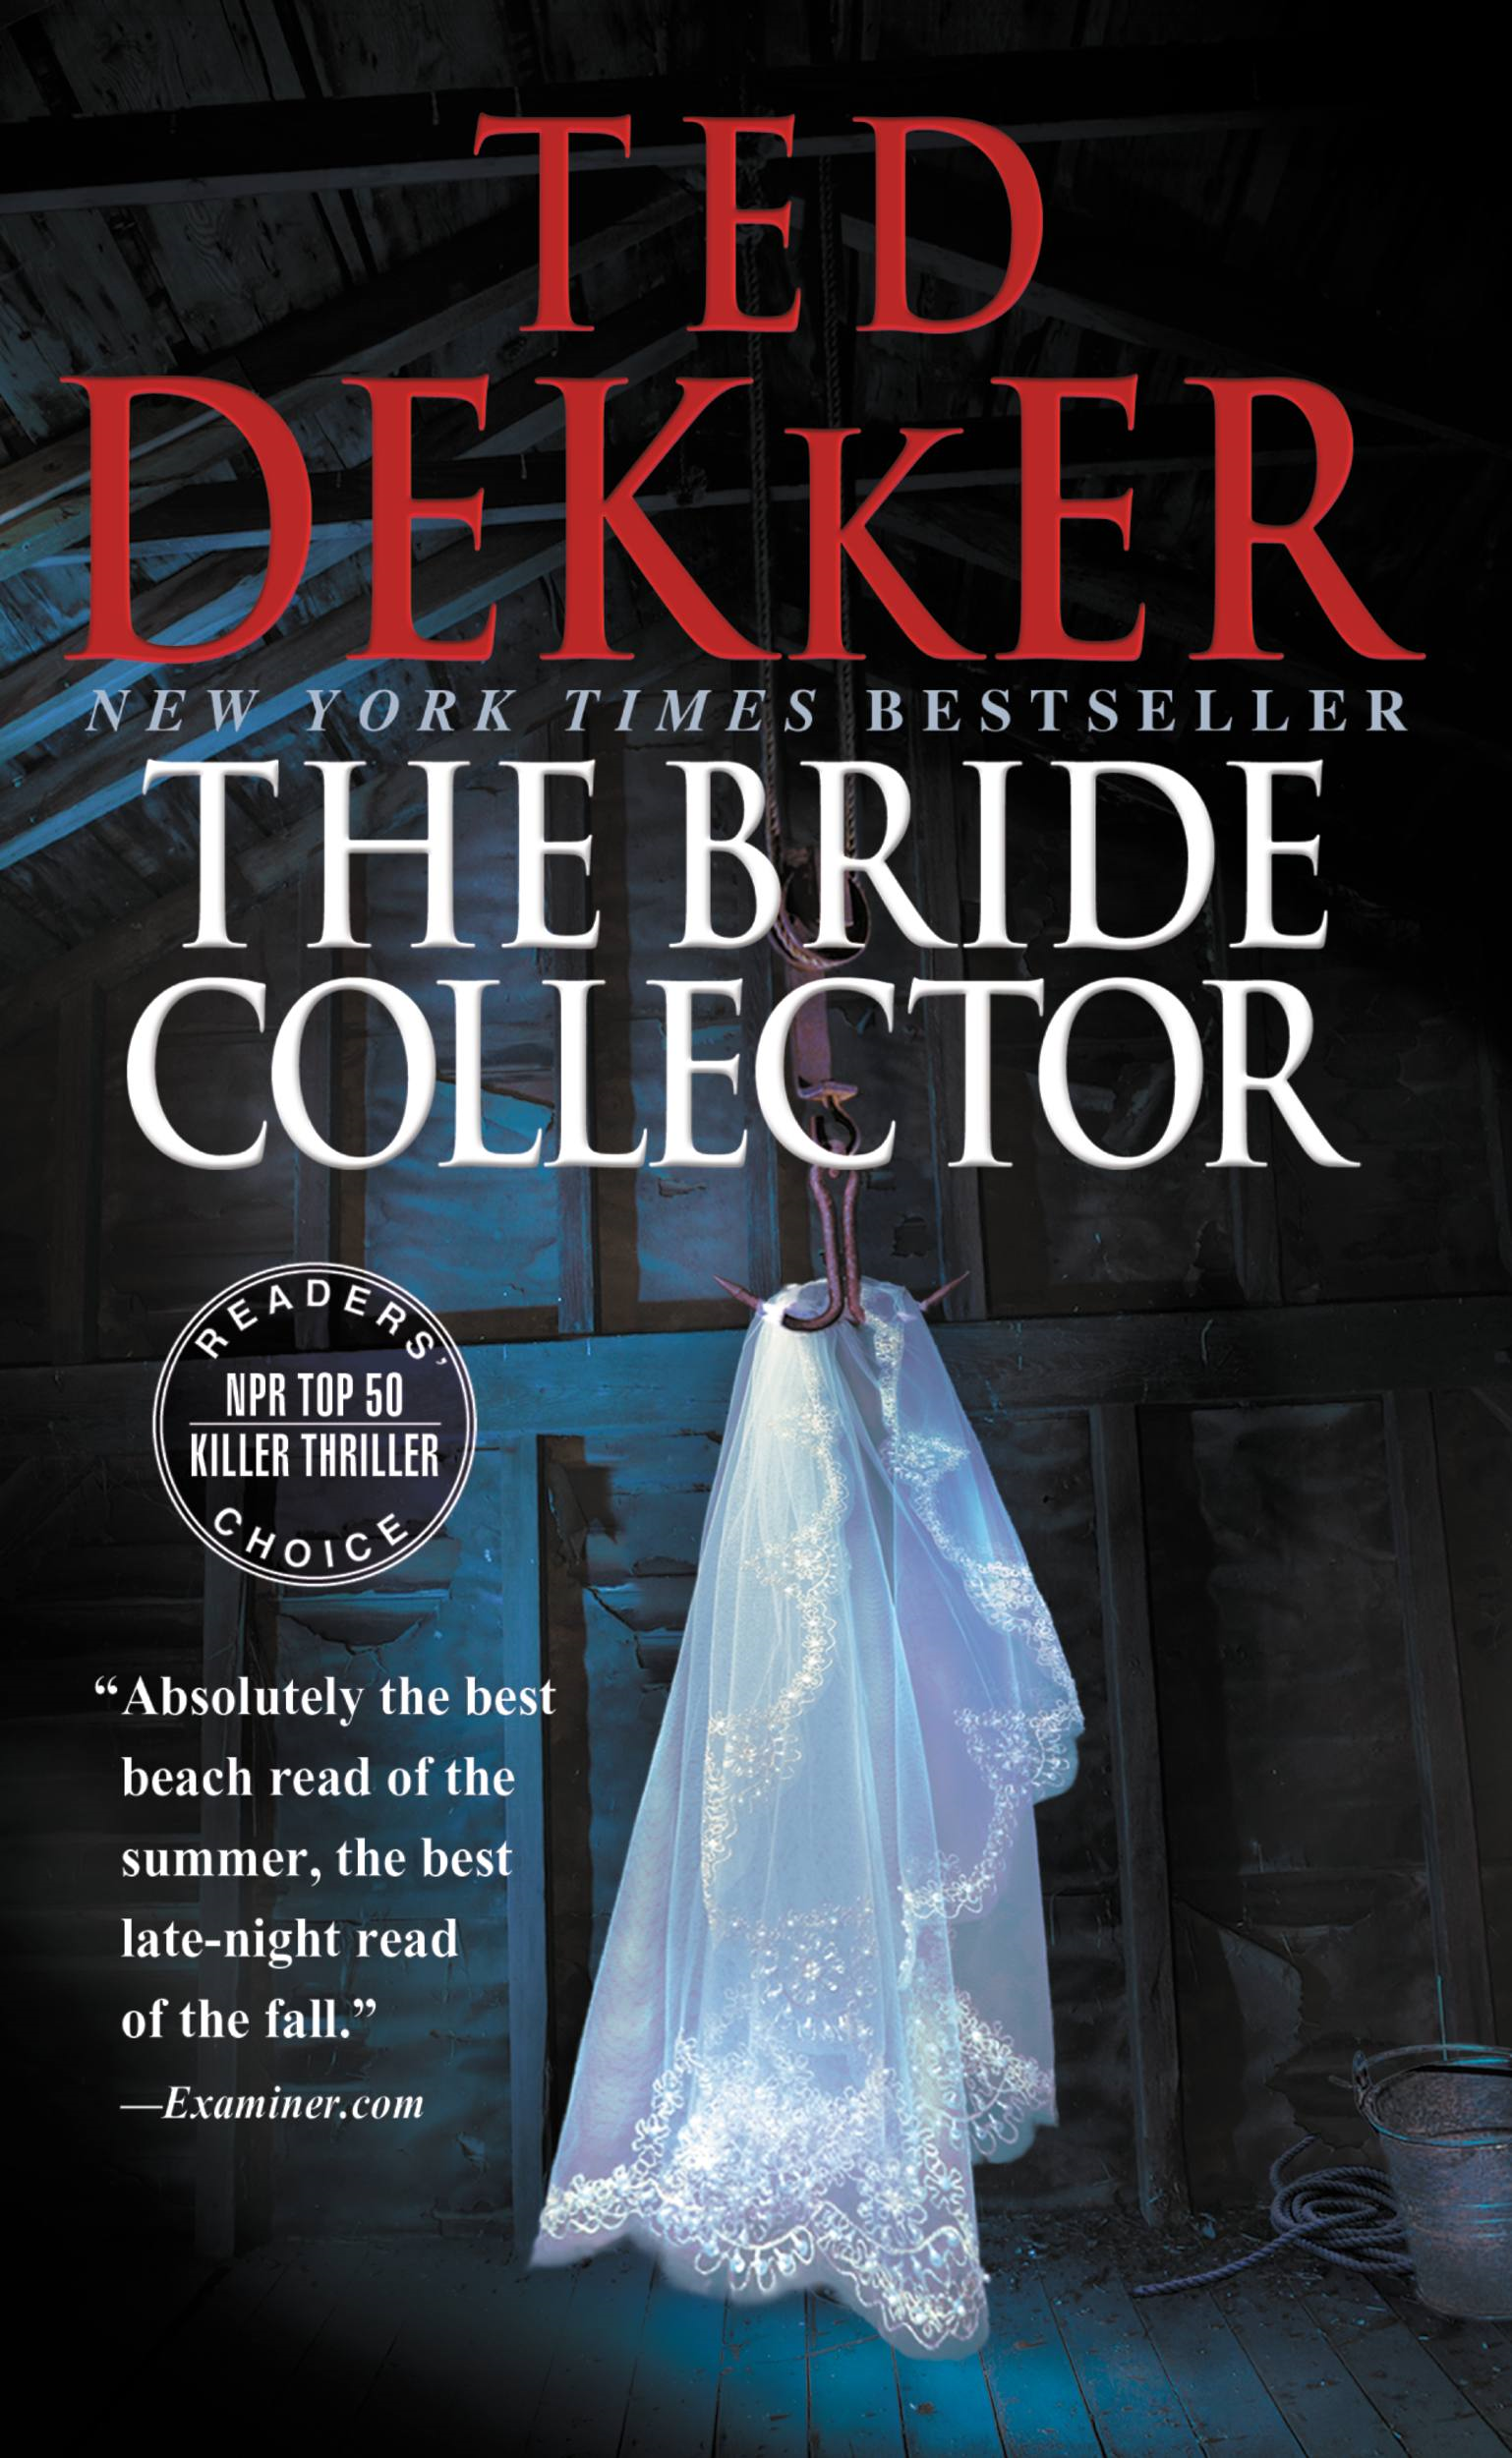 The Bride Collector By: Ted Dekker